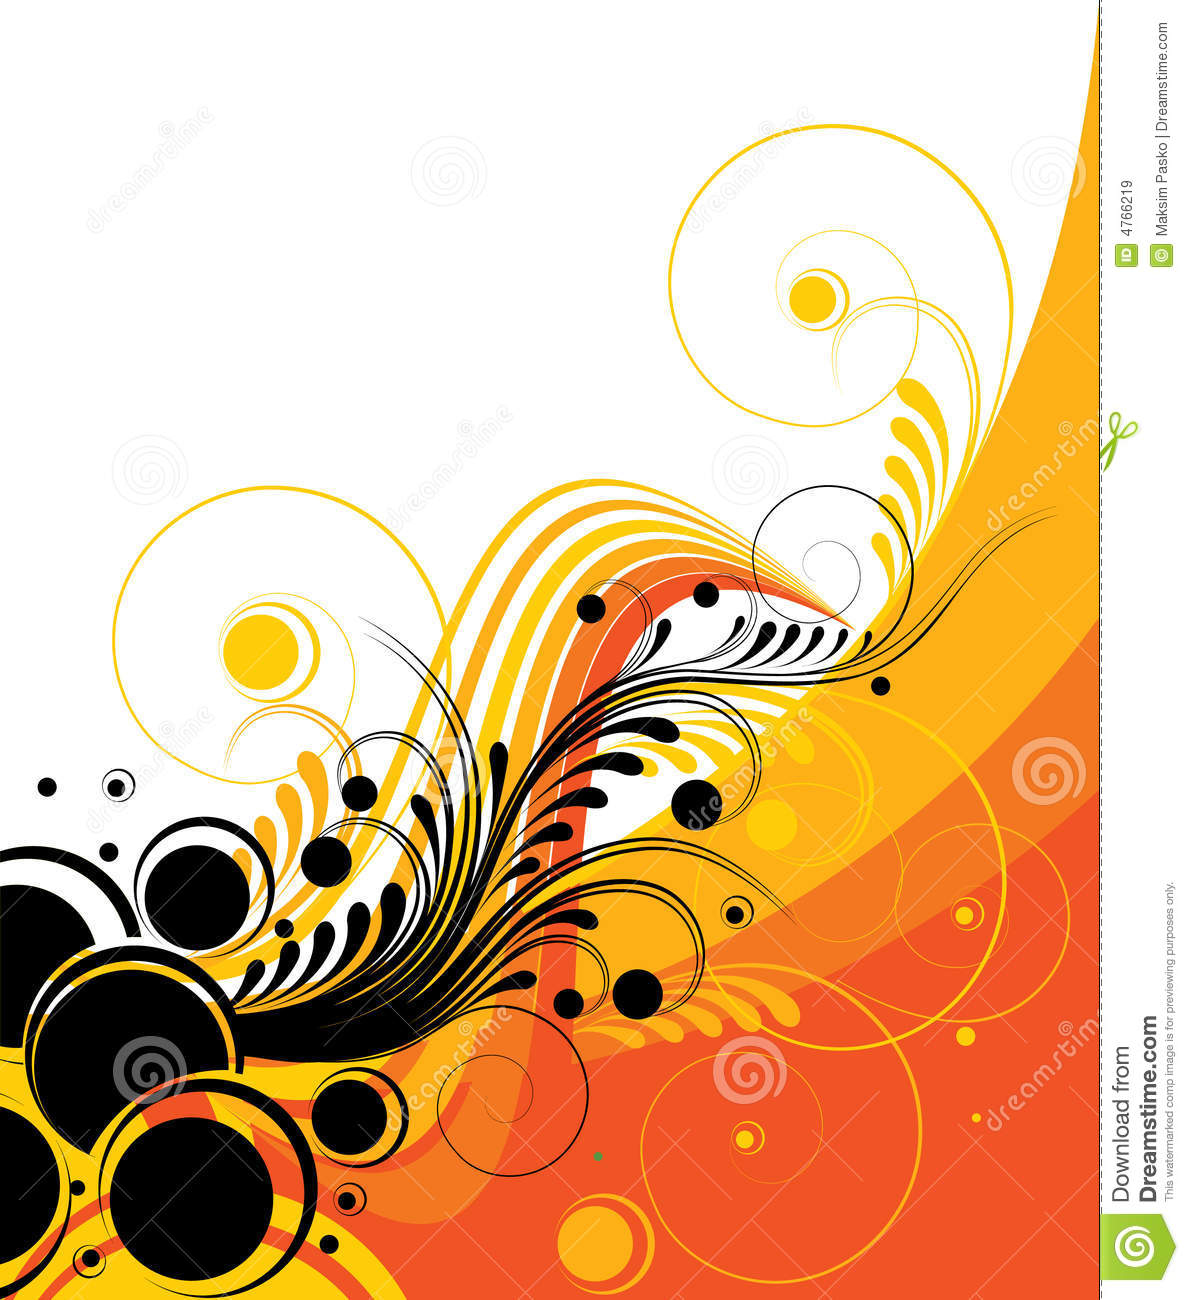 Http Www Dreamstime Com Royalty Free Stock Images Retro Abstract Design Image4766219